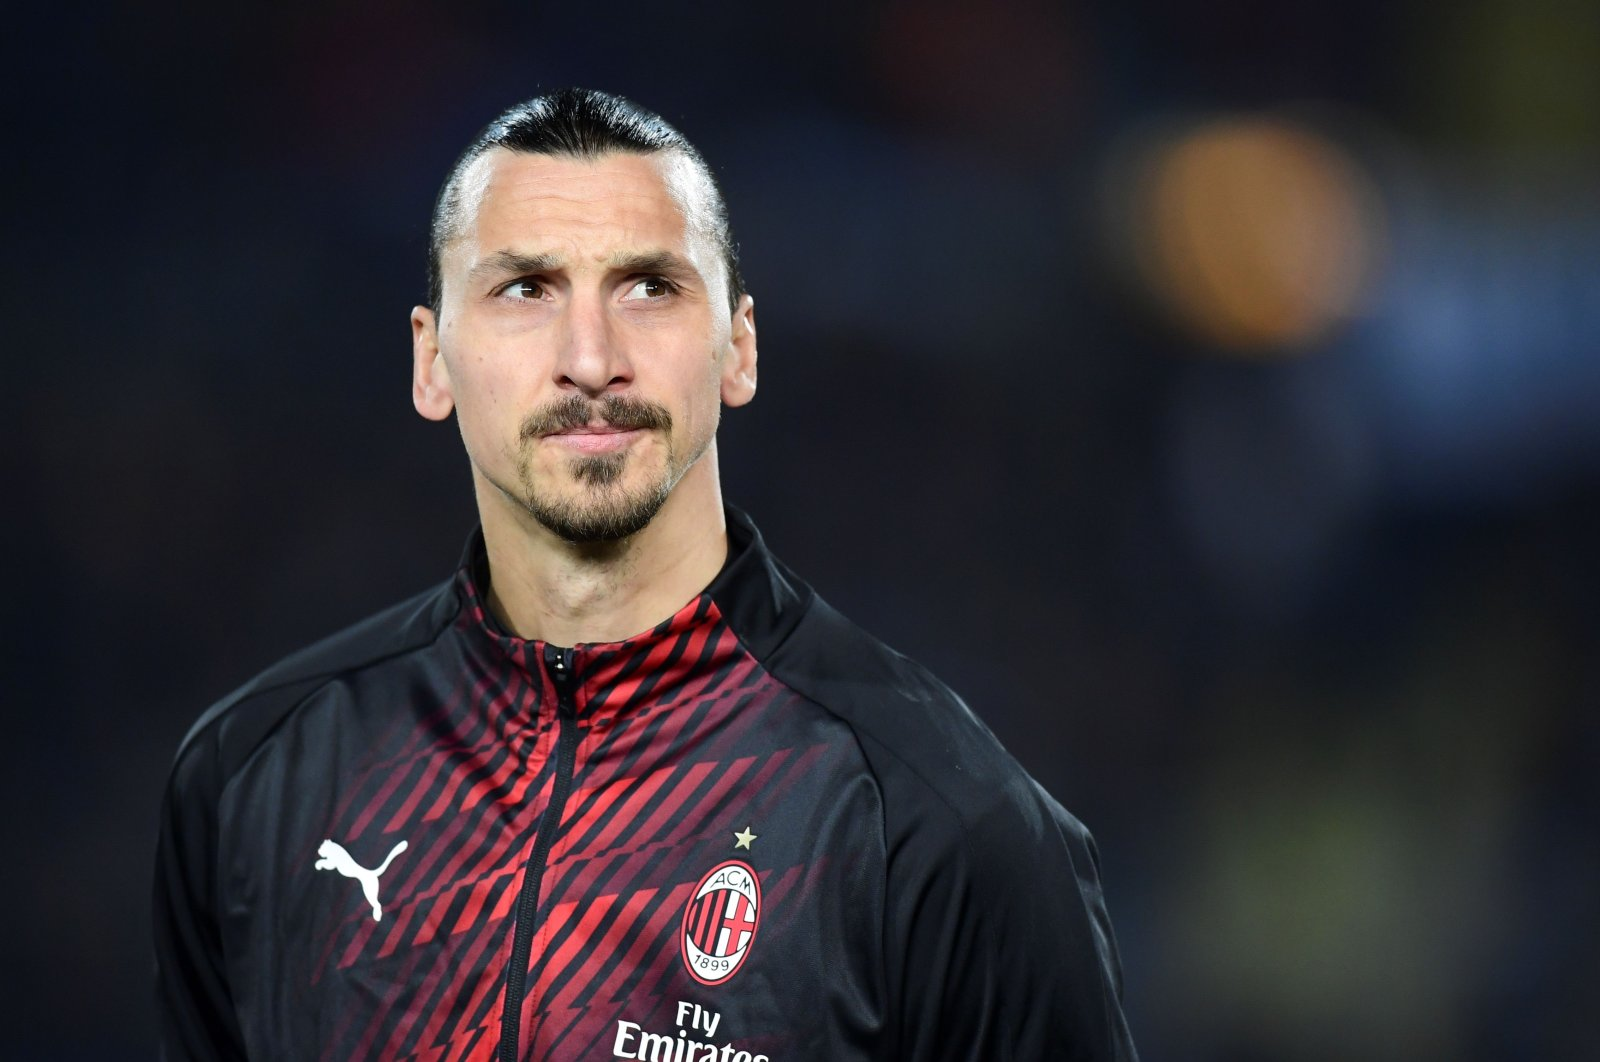 Zlatan Ibrahimovic during a Serie match in Brescia, Italy, Jan. 24, 2020. (AFP Photo)